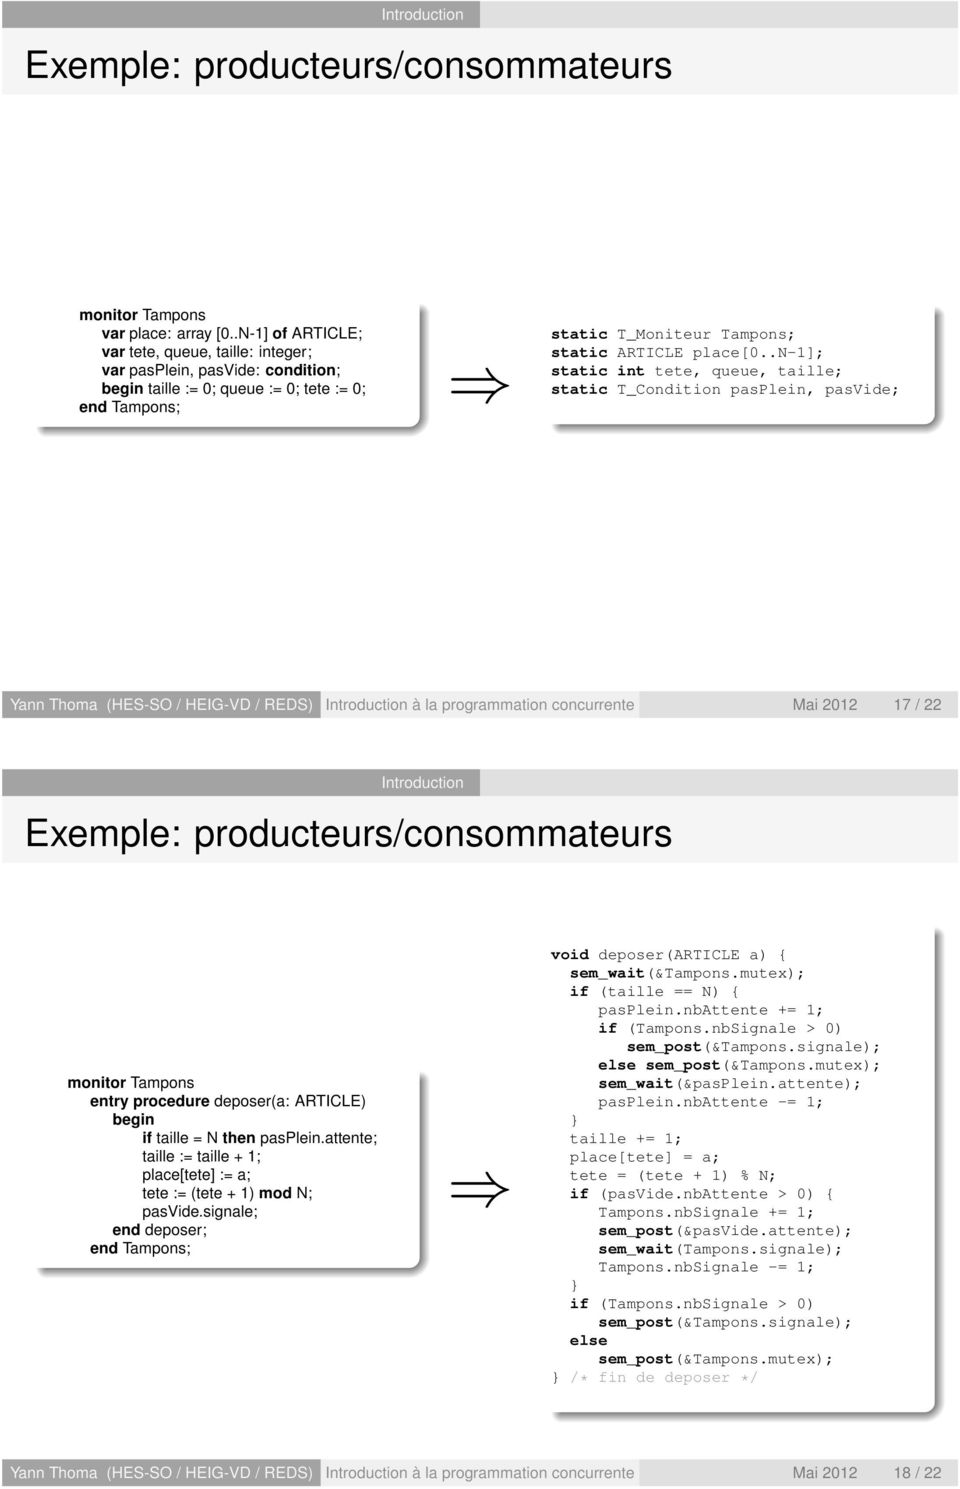 .n-1]; static int tete, queue, taille; static T_Condition pasplein, pasvide; Yann Thoma (HES-SO / HEIG-VD / REDS) à la programmation concurrente Mai 2012 17 / 22 Exemple: producteurs/consommateurs